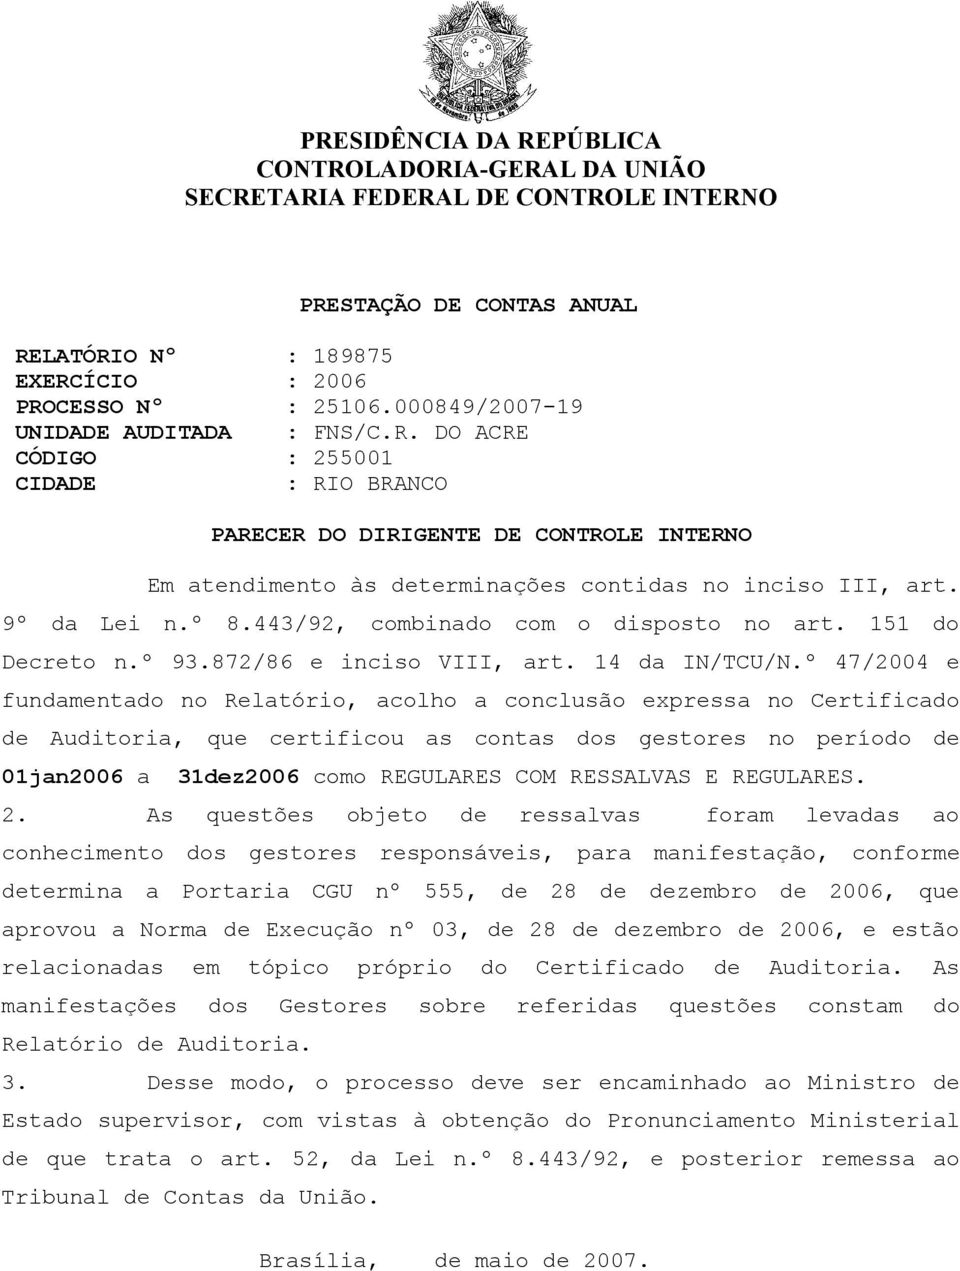 9º da Lei n.º 8.443/92, combinado com o disposto no art. 151 do Decreto n.º 93.872/86 e inciso VIII, art. 14 da IN/TCU/N.